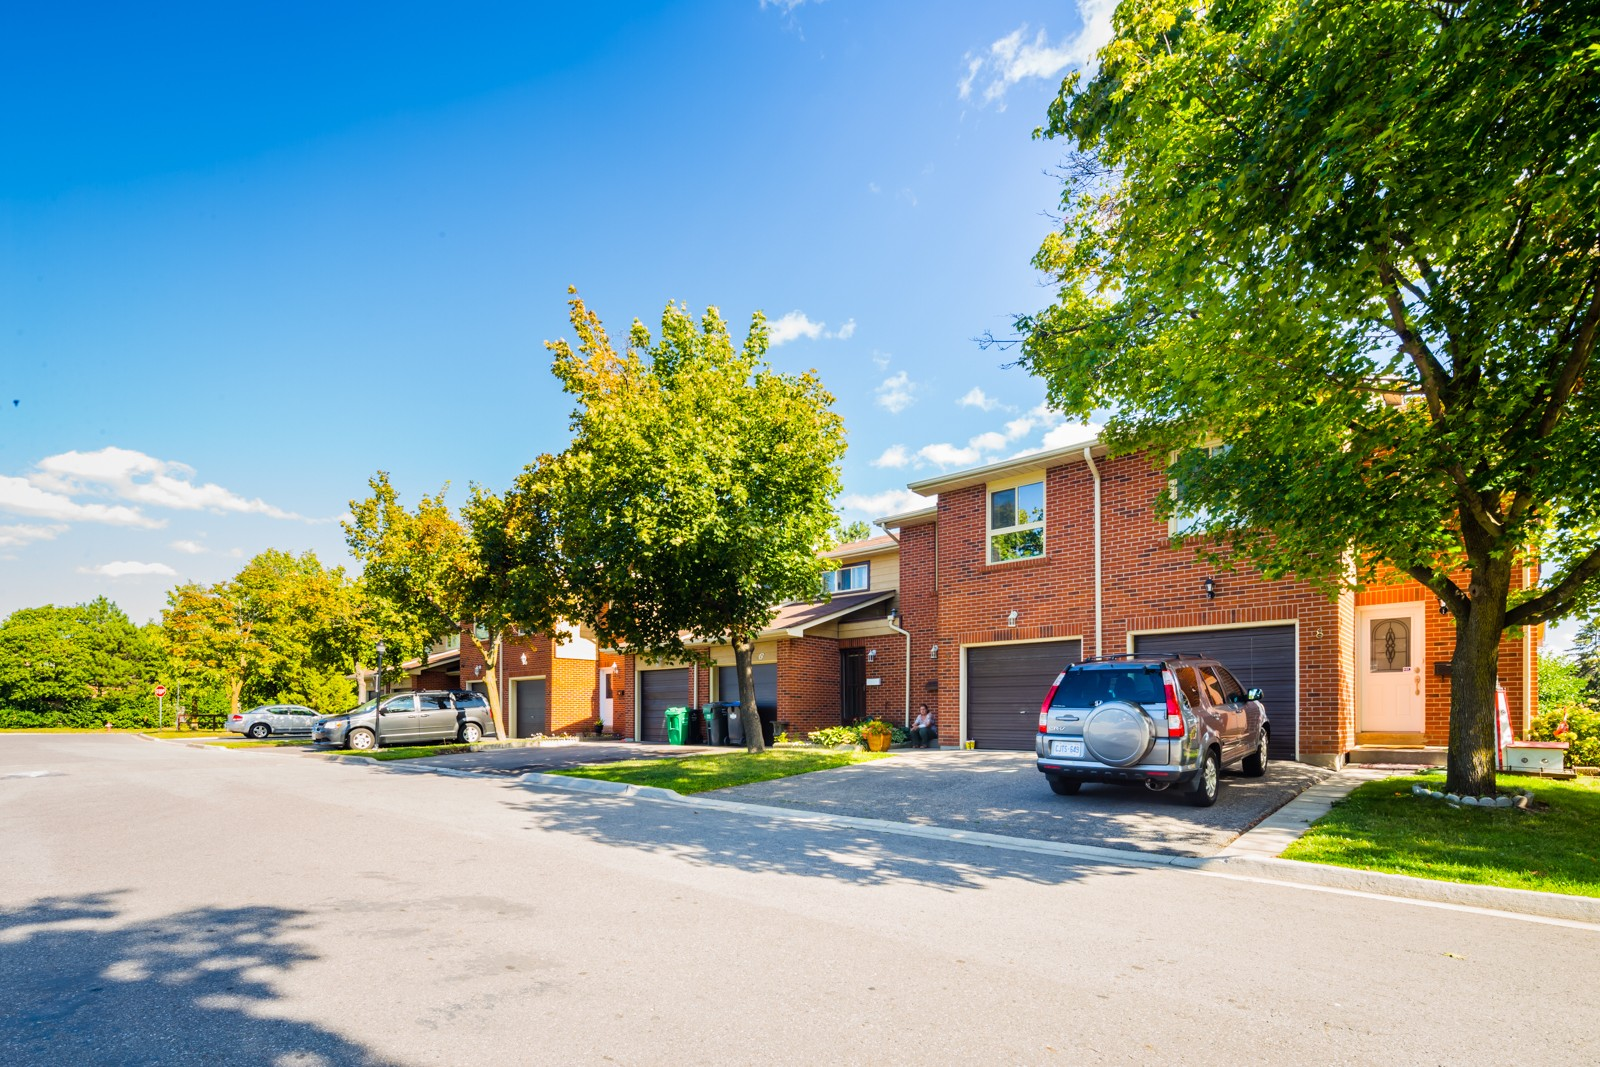 98 Foster Crescent Townhouses at 2 Foster Crescent, Brampton 0